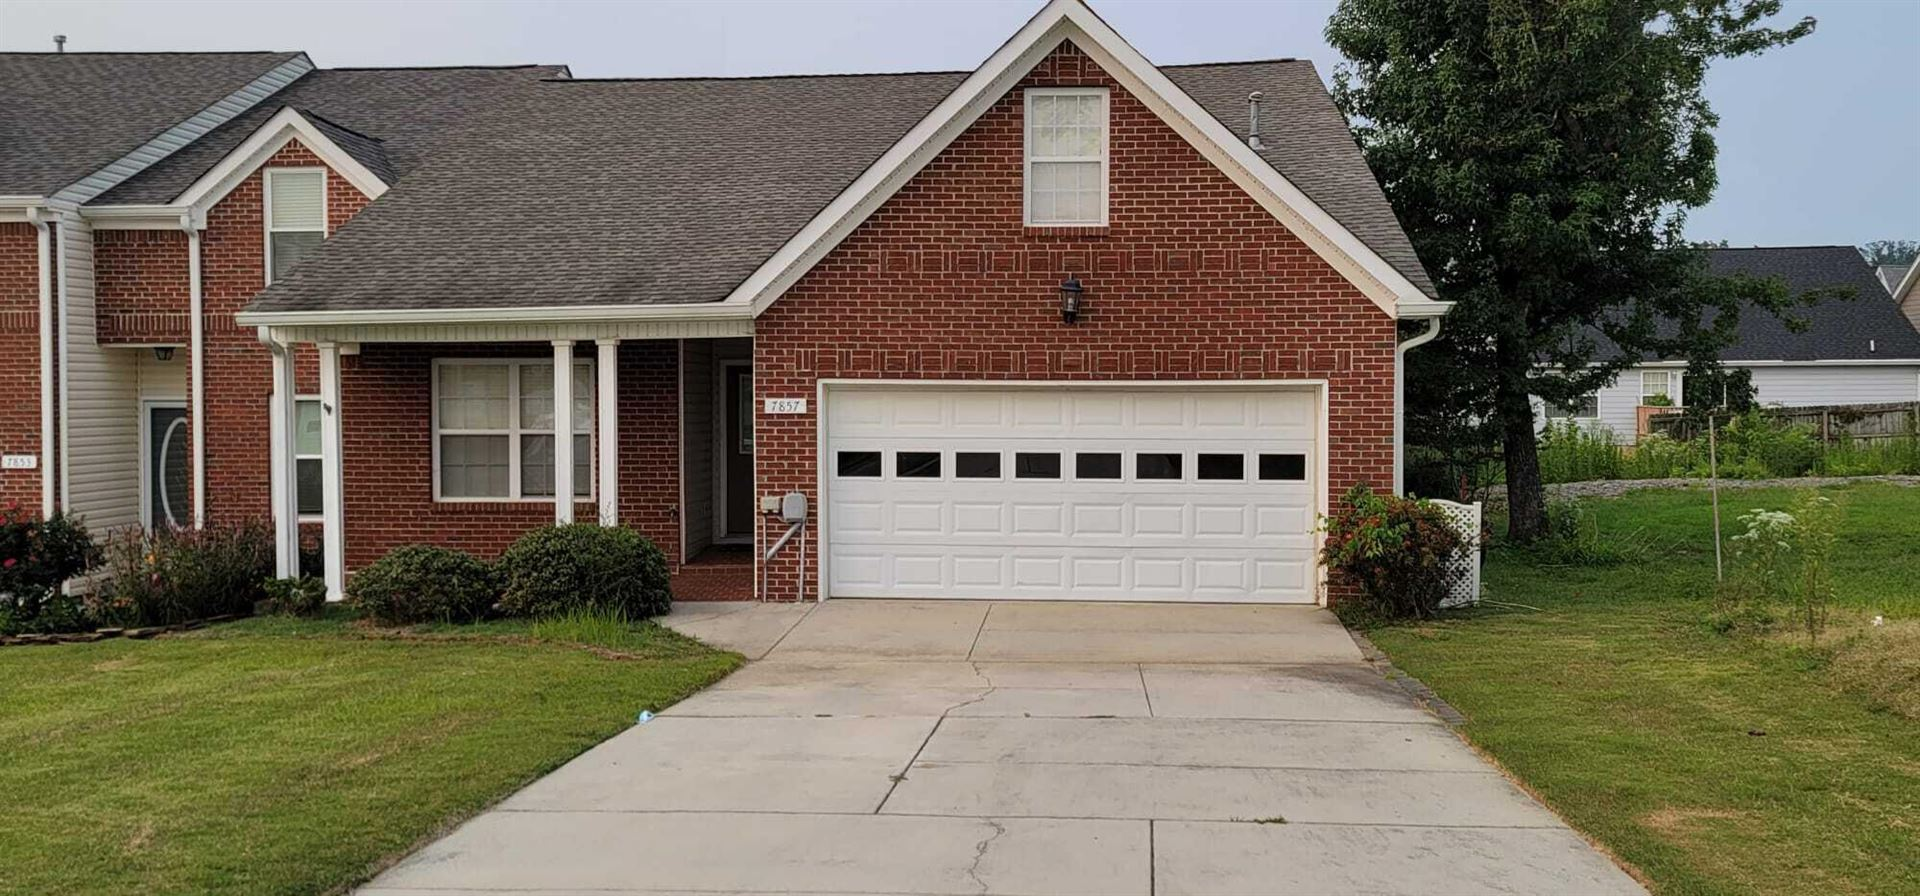 Photo for 7857 Legacy Park Ct, Chattanooga, TN 37421 (MLS # 1343437)